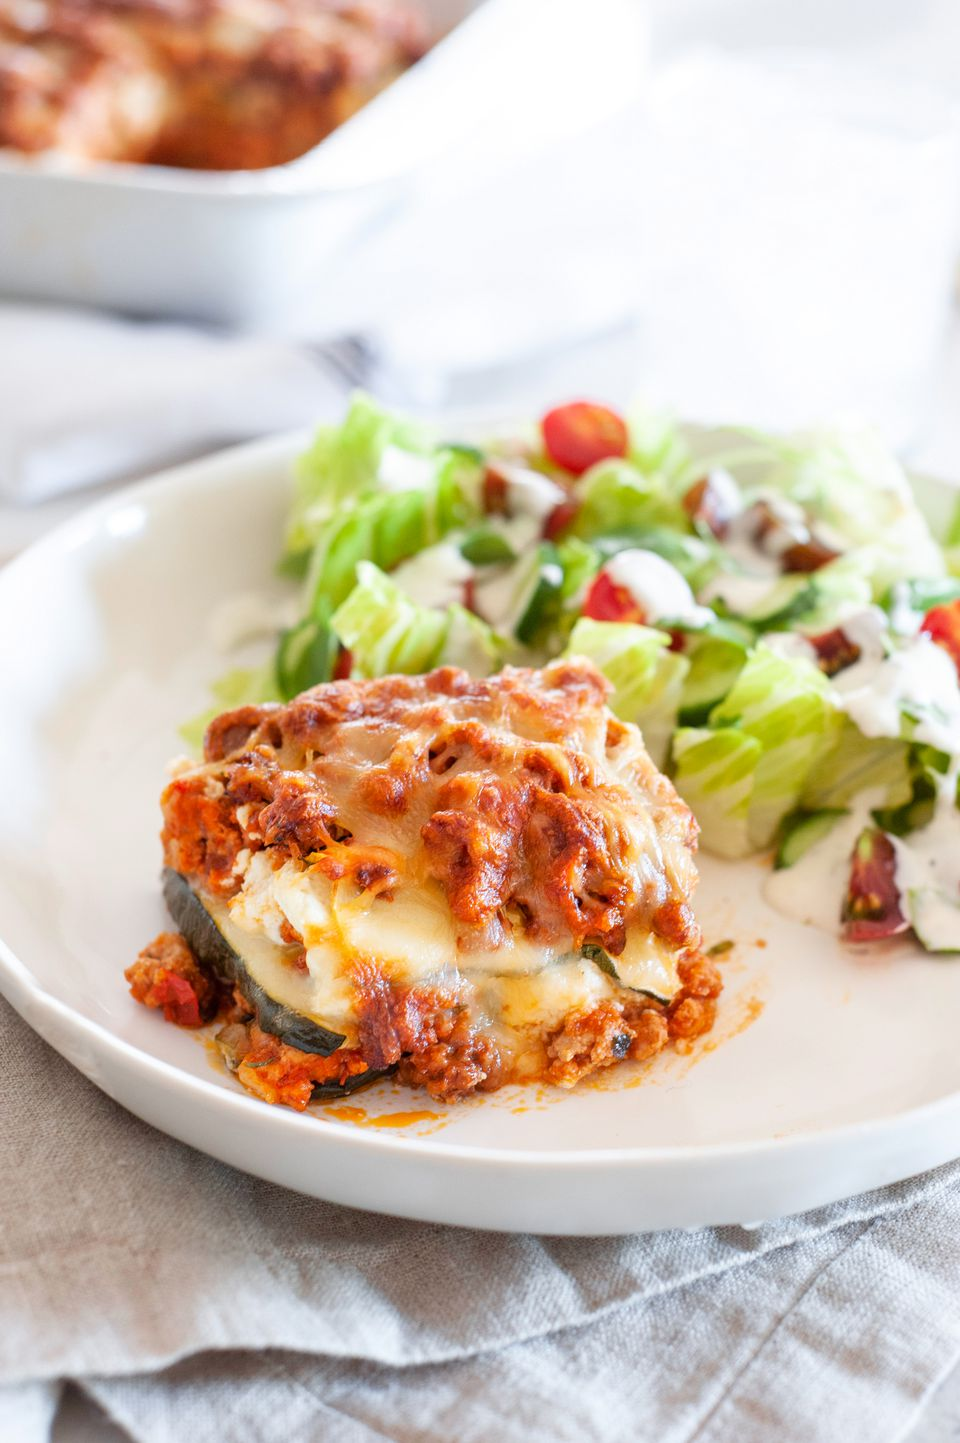 No noodle zucchini lasagna on a plate with a salad.